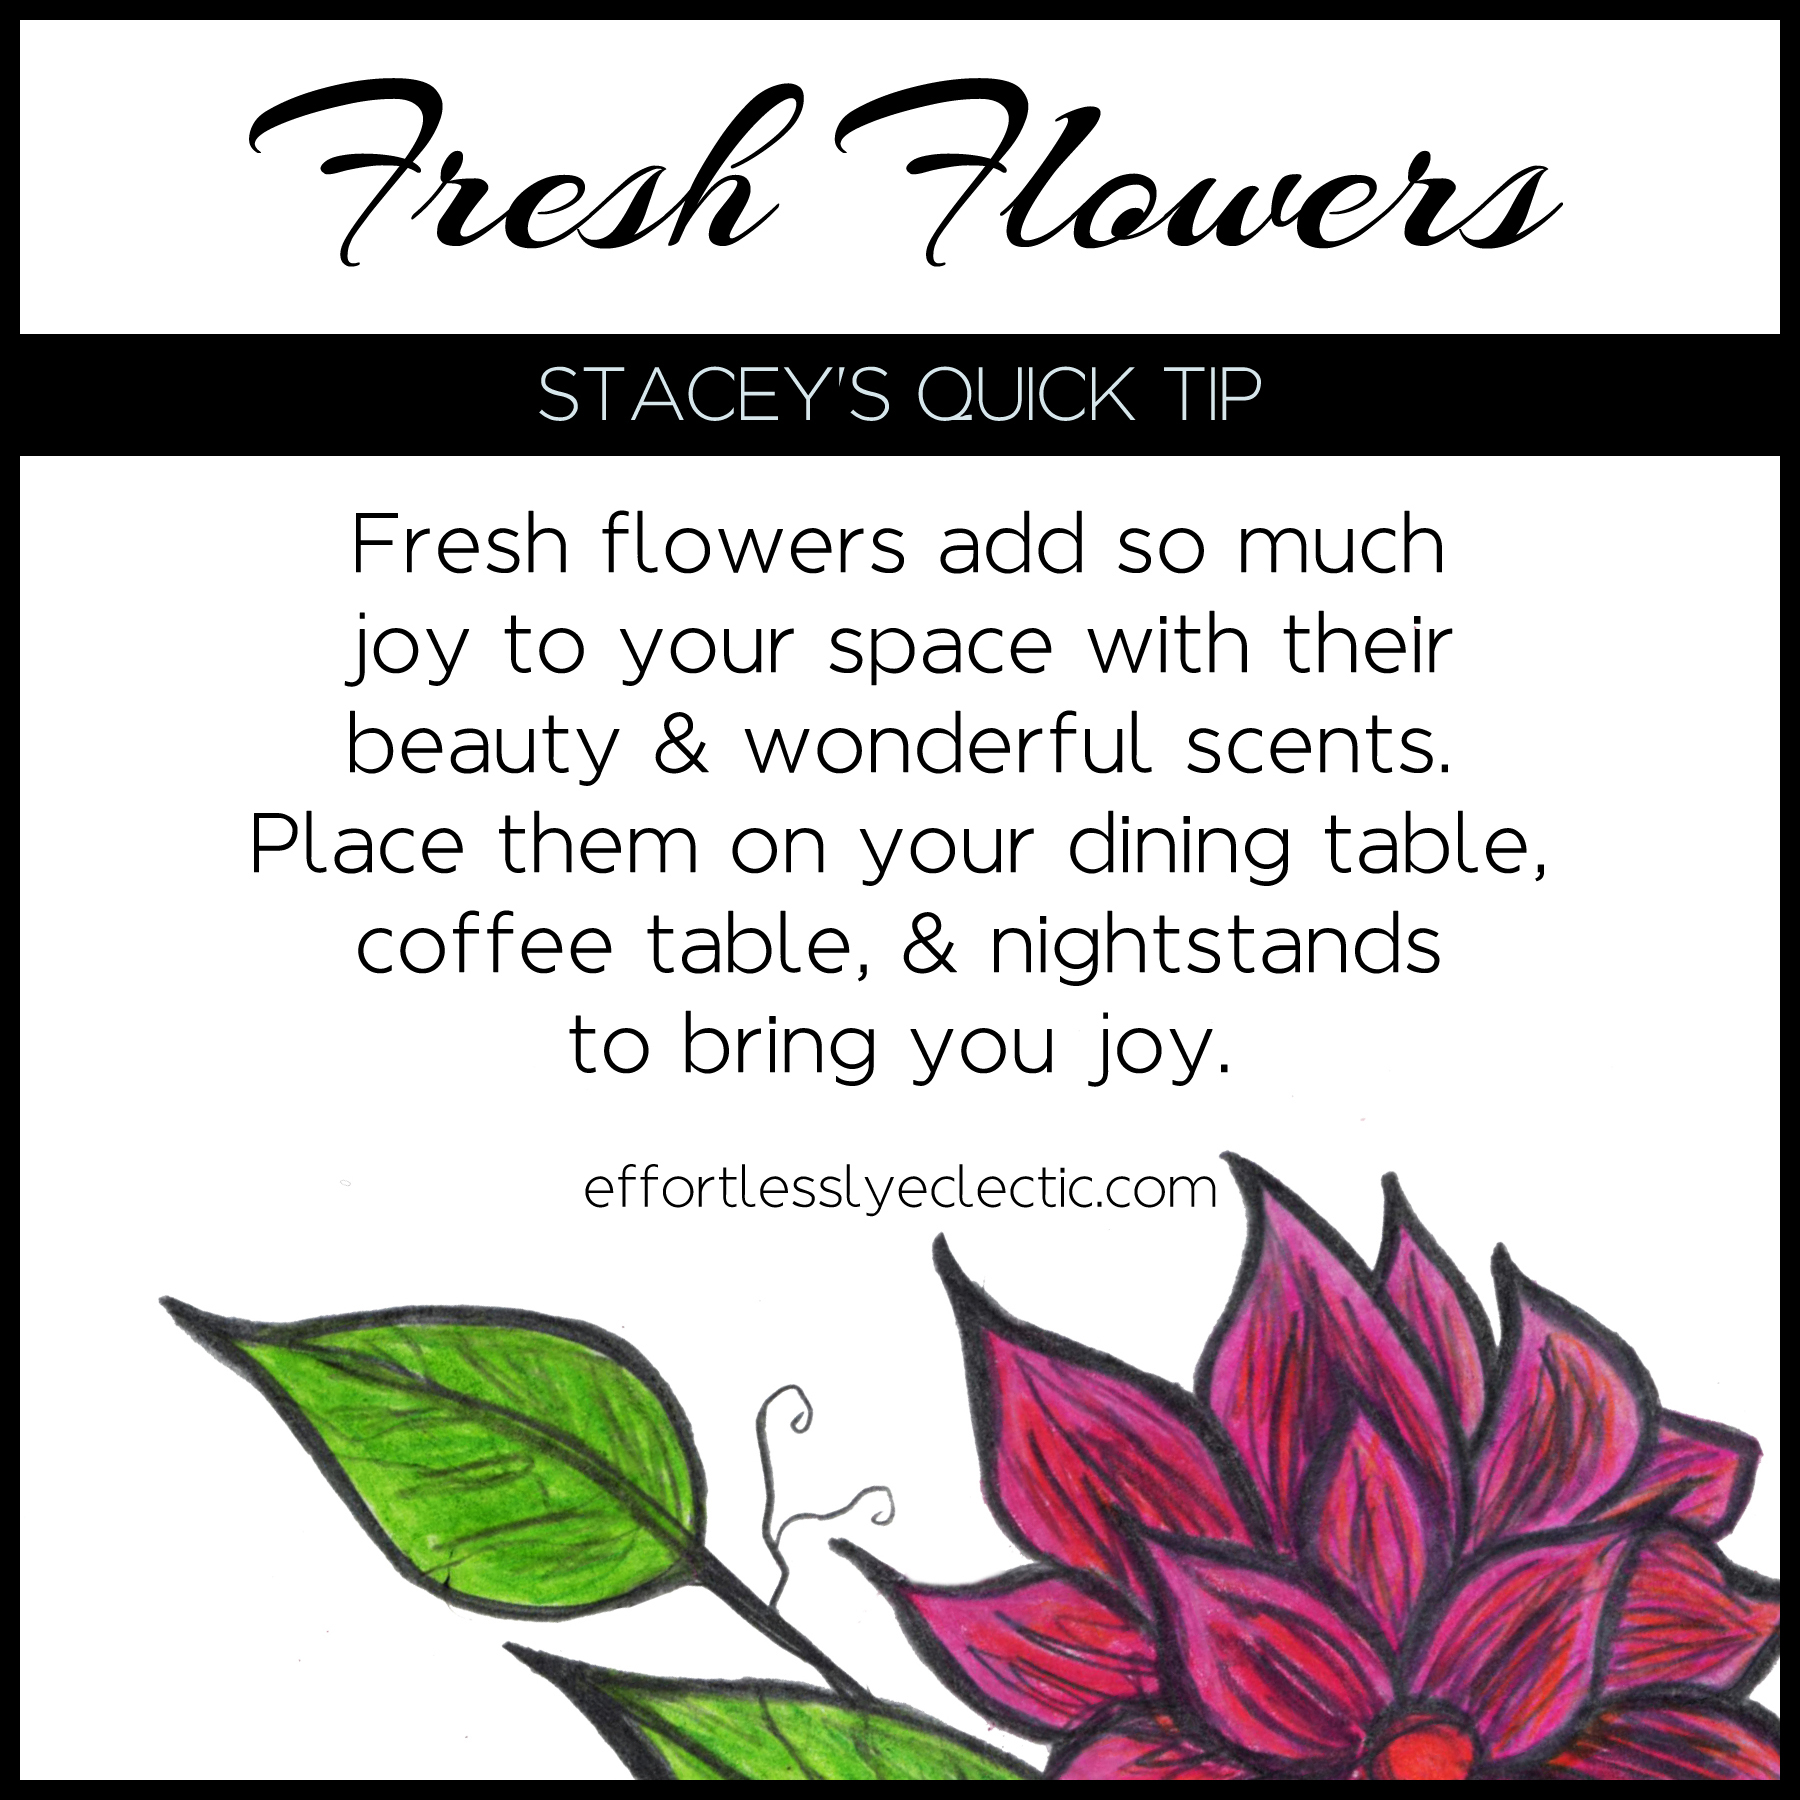 Fresh Flowers - A home decor tip about adding flowers to your home